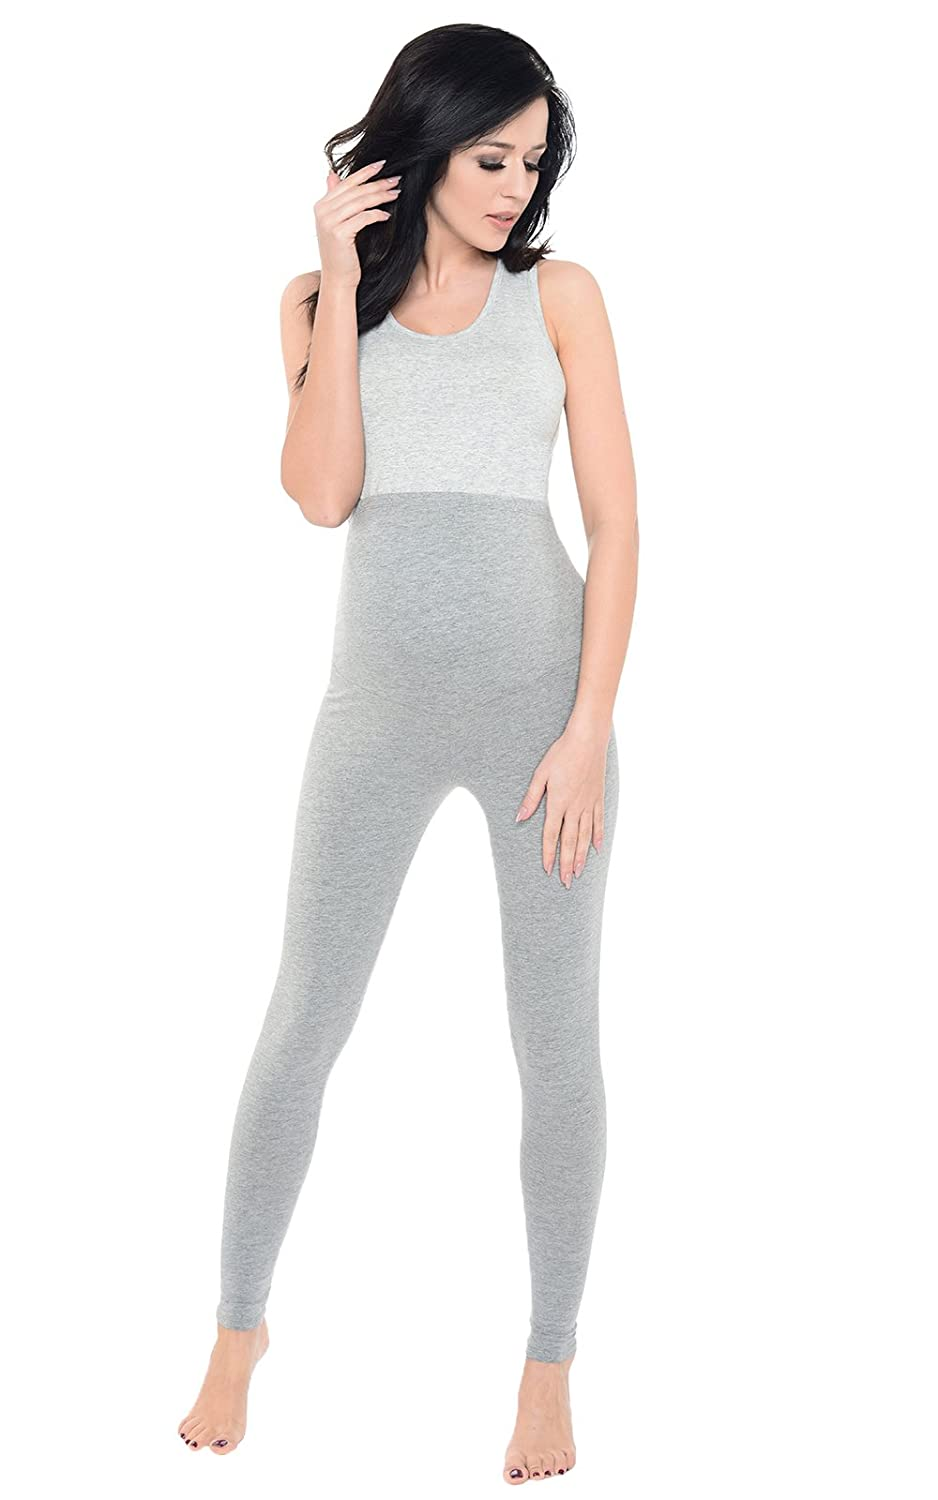 Purpless Maternity Pregnancy Leggings Over Bump Full Length Size 1025